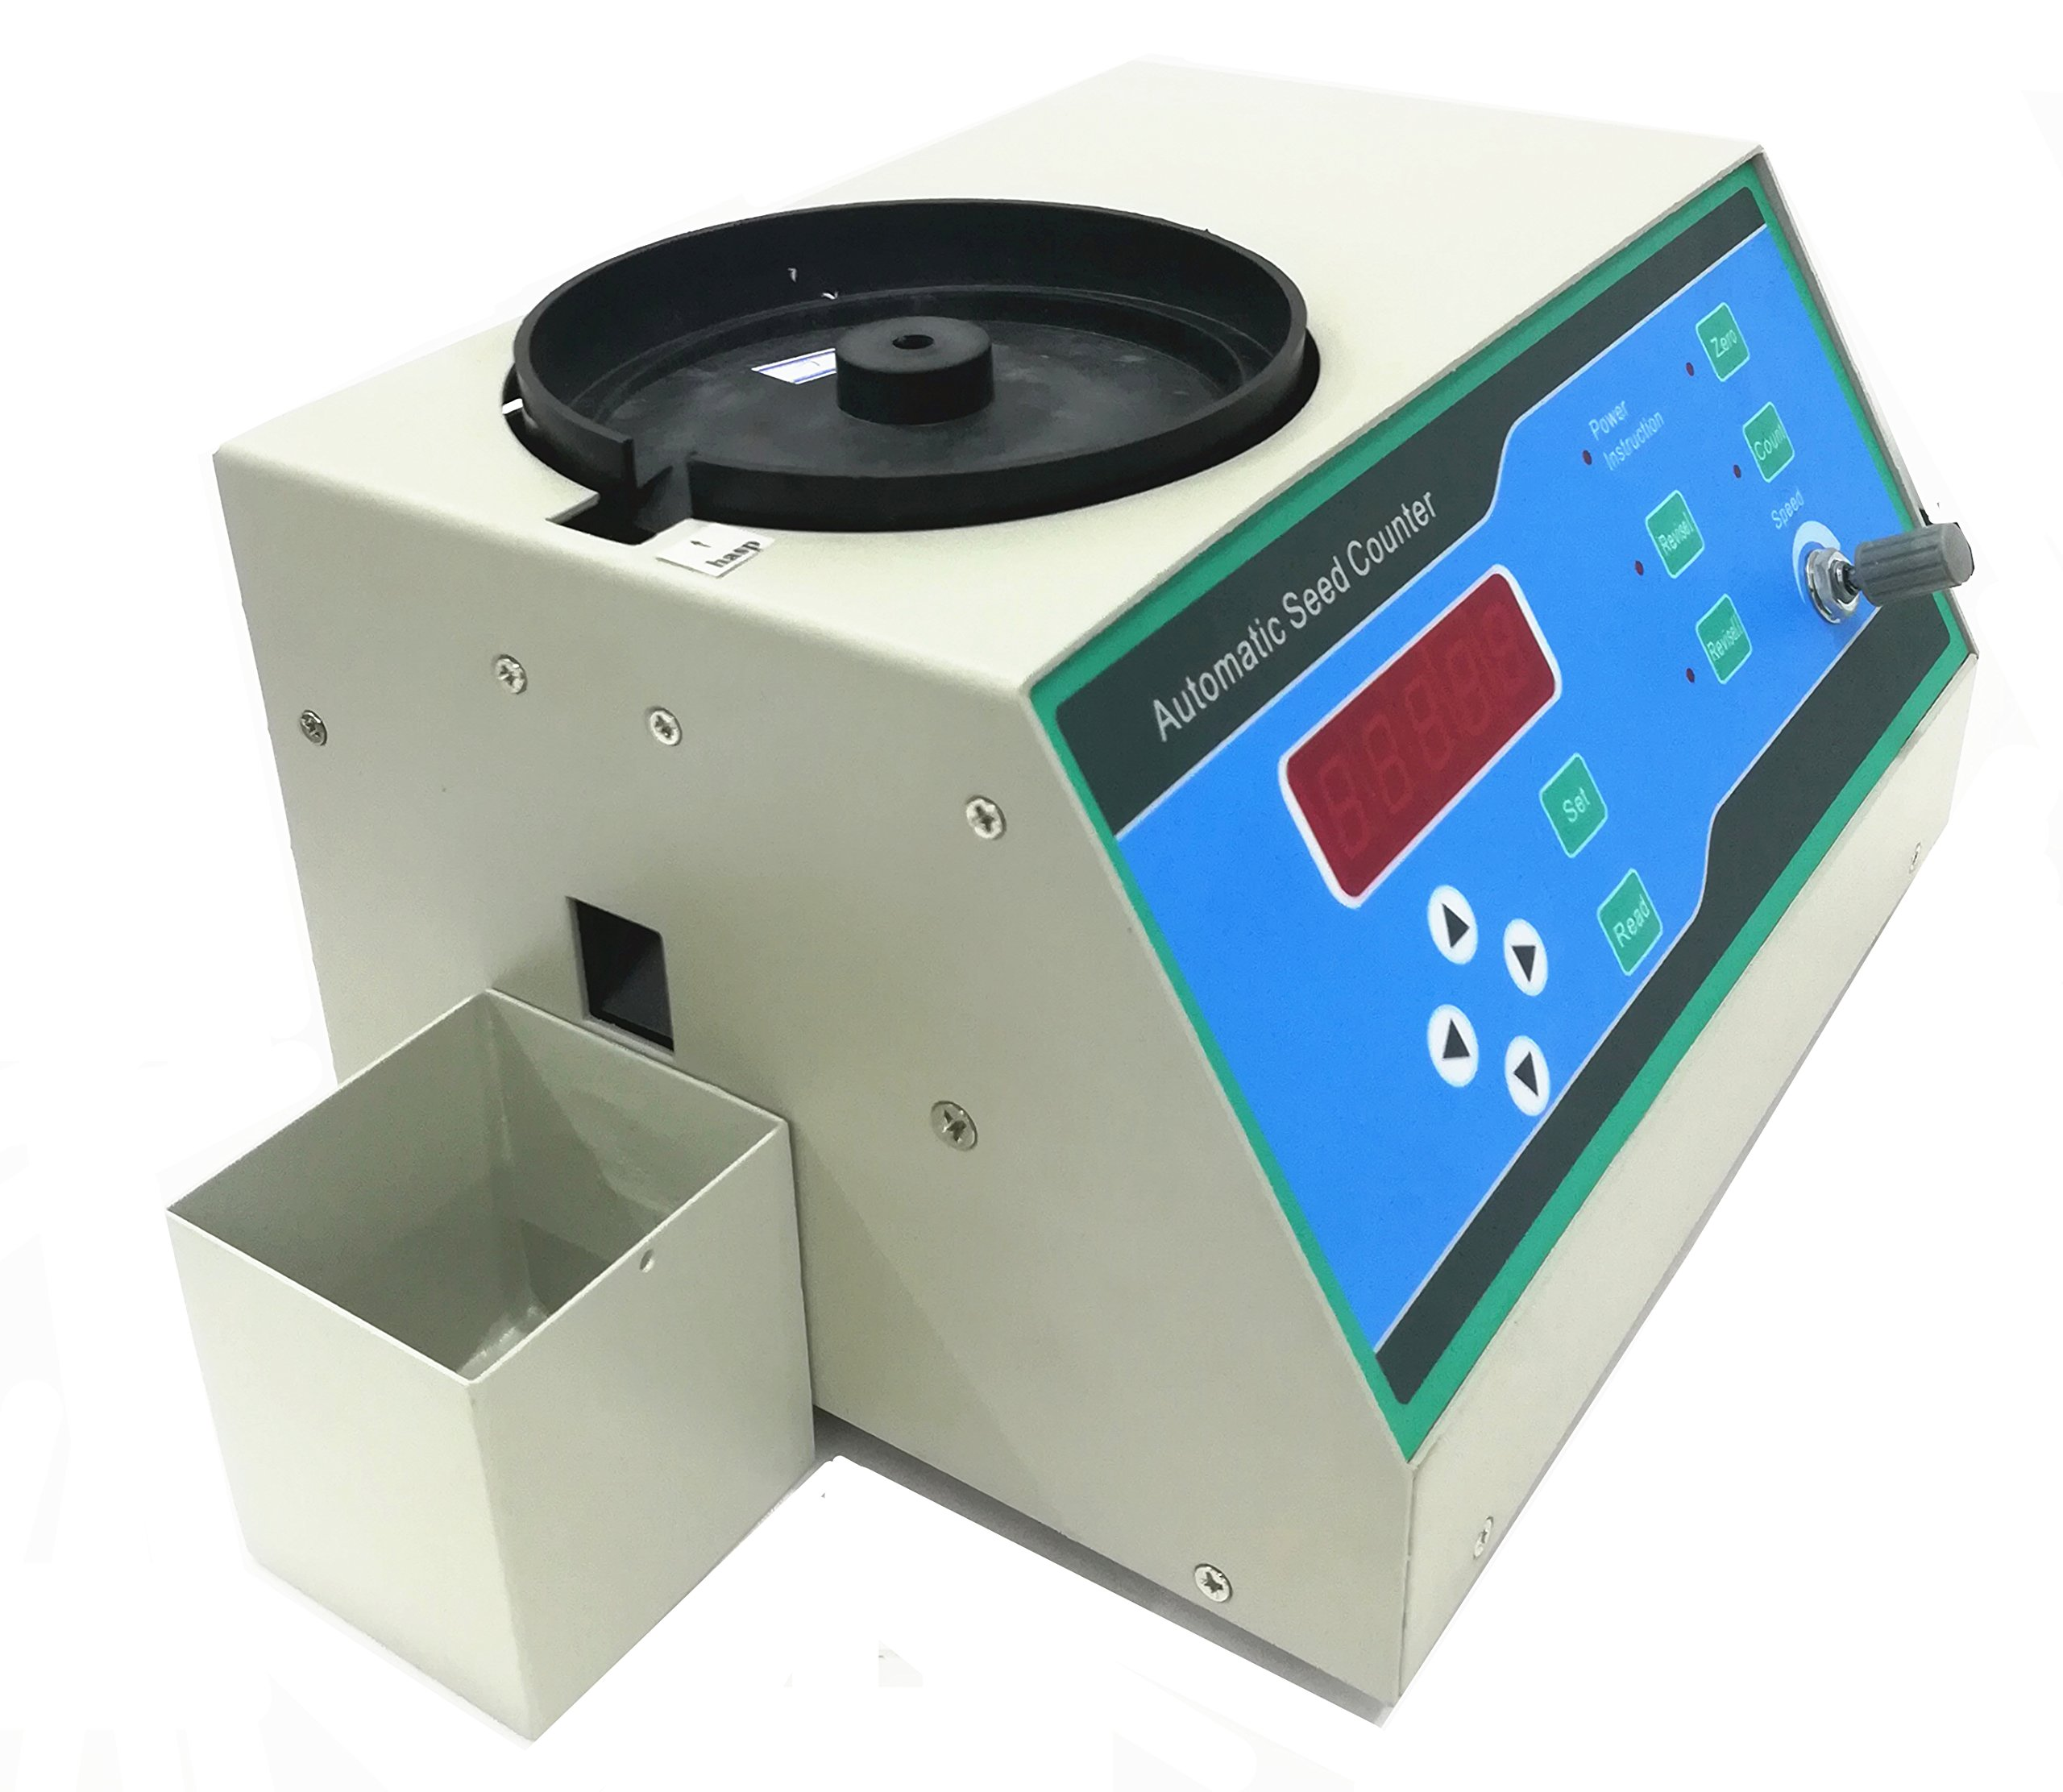 CGOLDENWALL Automatic Seeds Counter Machine for medium and Samall Shapes Seeds Special for small seeds as millet,rape seed,rice, wheat, seed, rape, vegetable, flower, tobacco by CGOLDENWALL (Image #4)